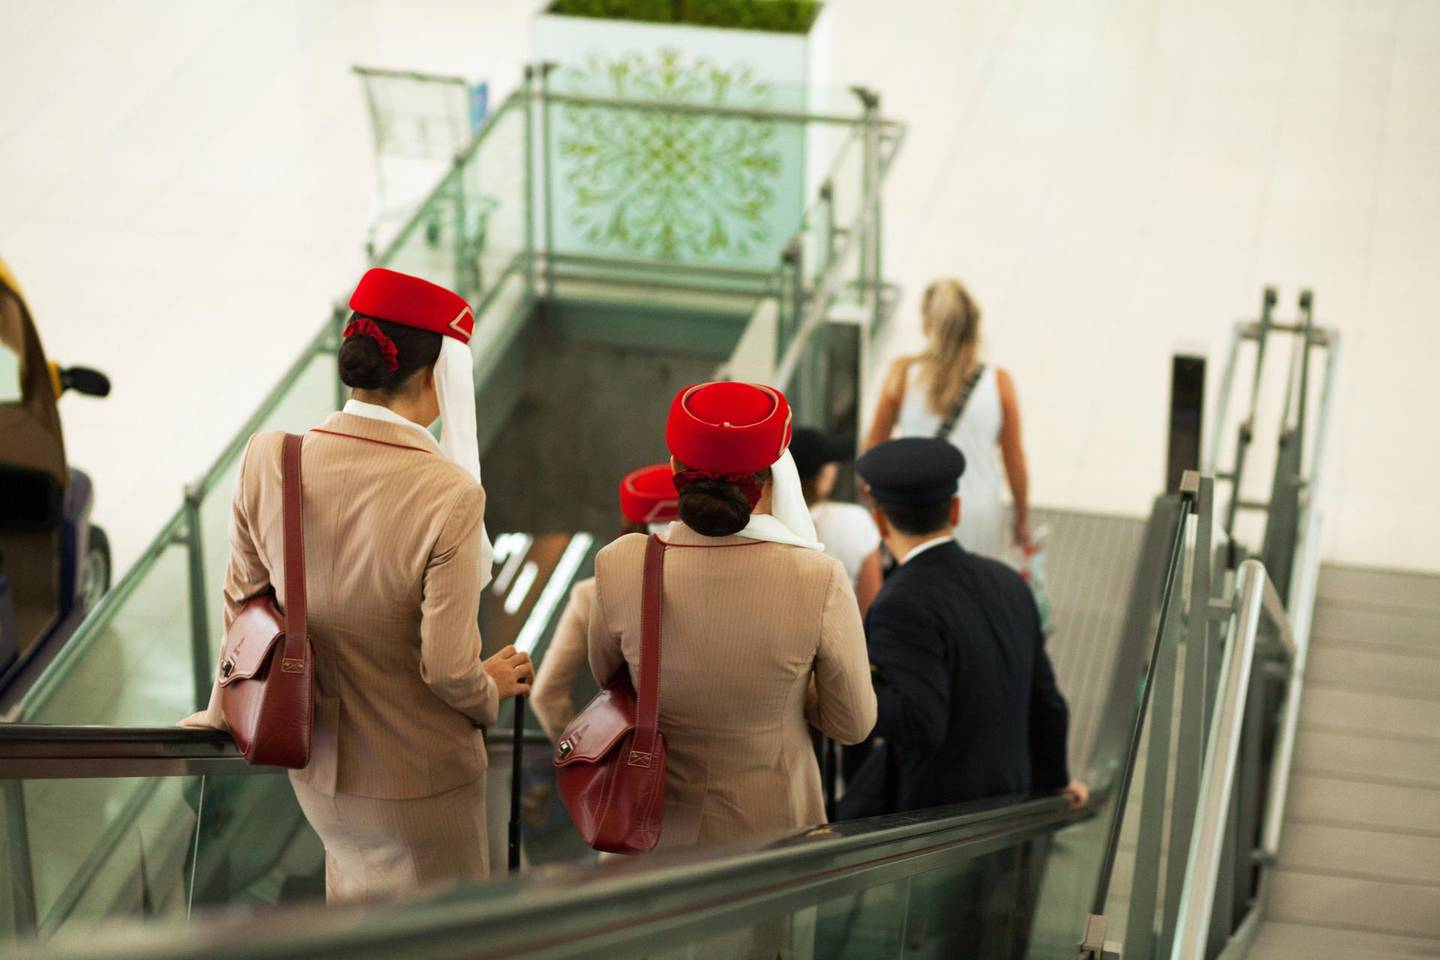 Bangkok, Thailand - July 1, 2016: Rearshot of stewardesses of Emirates airline on escalator in airport Bangkok Survanabhumi. Crew member are on way down in hall to gates.